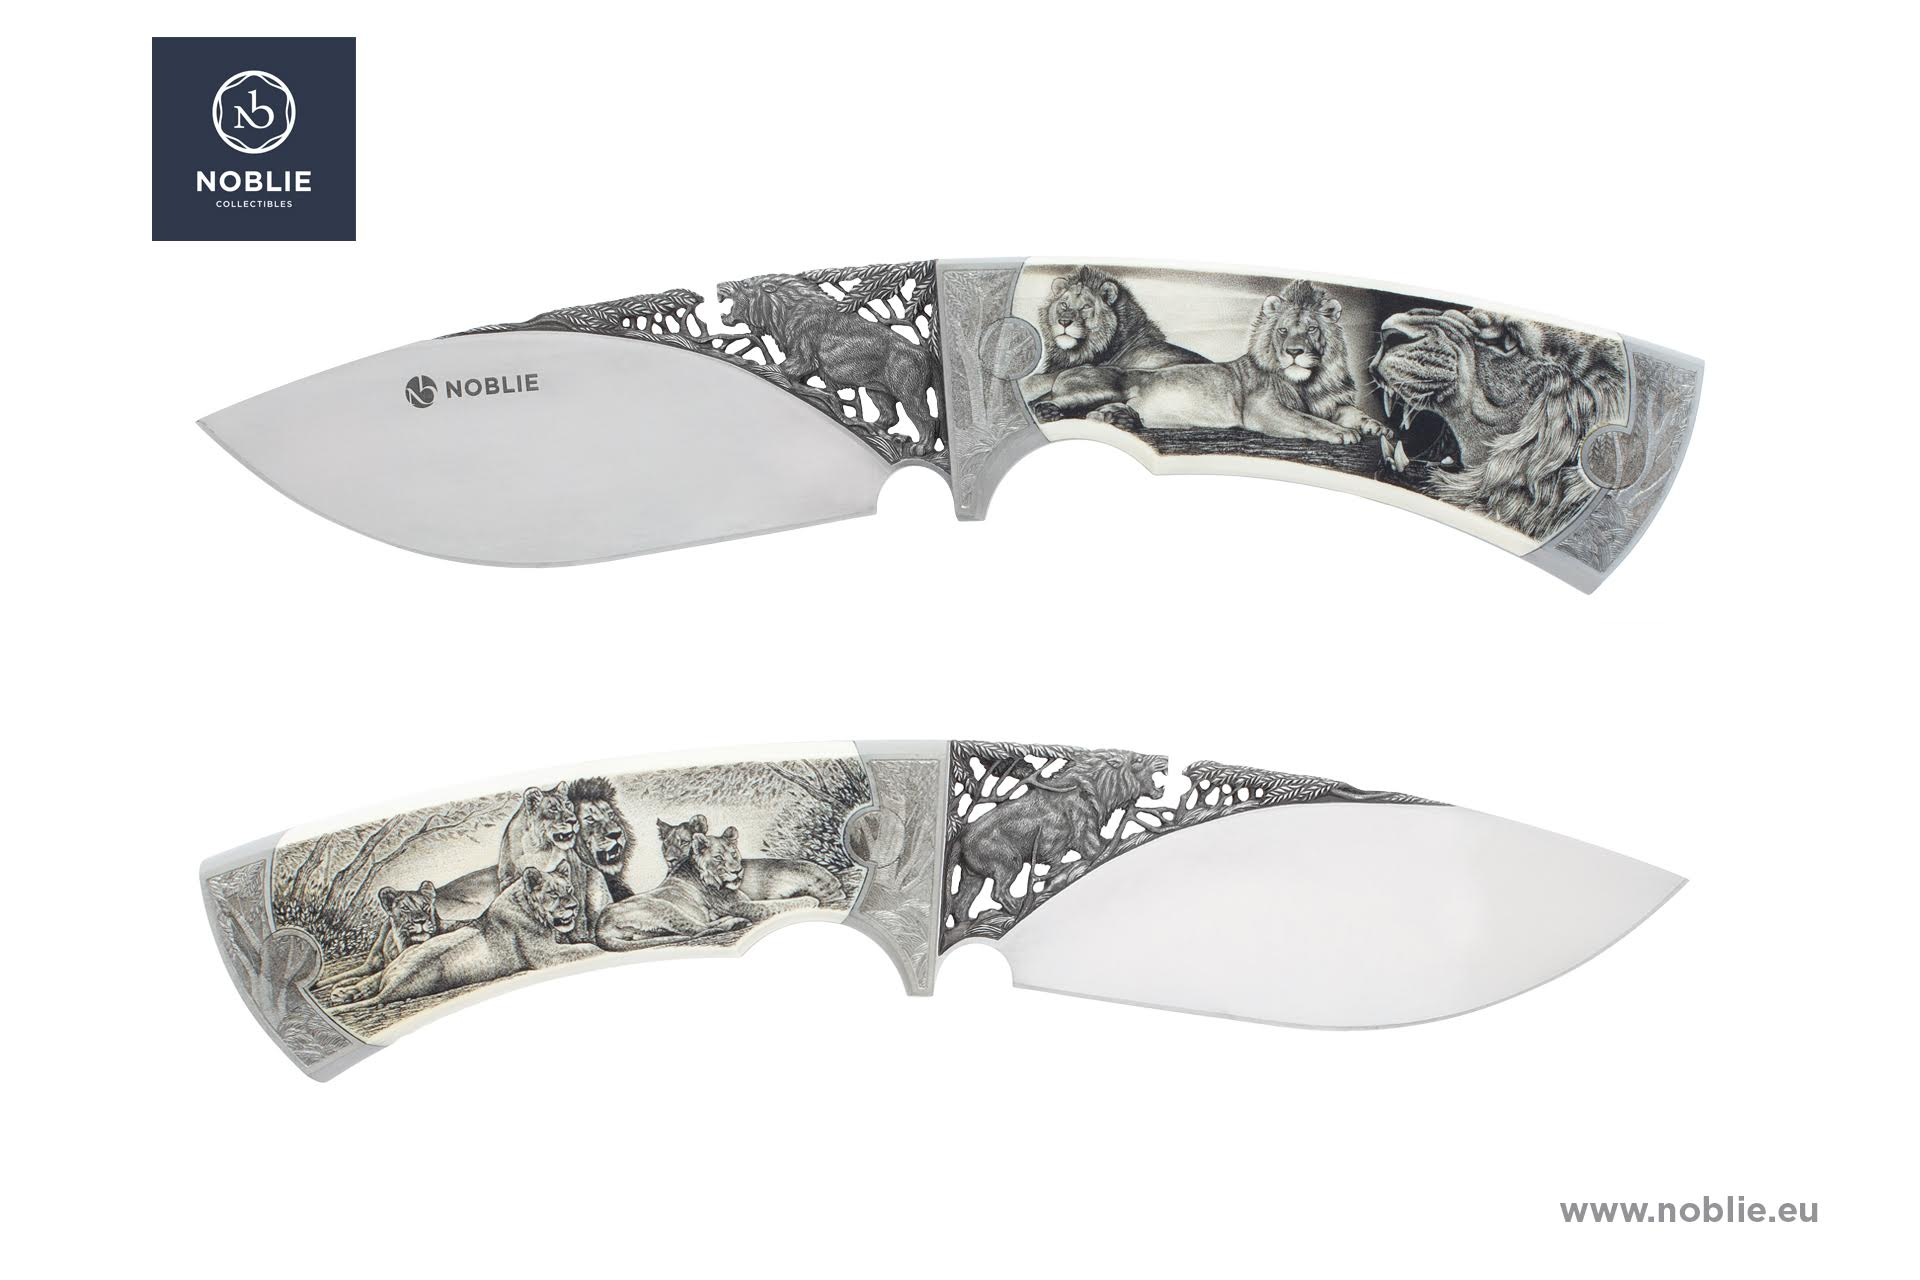 engraved knife composition